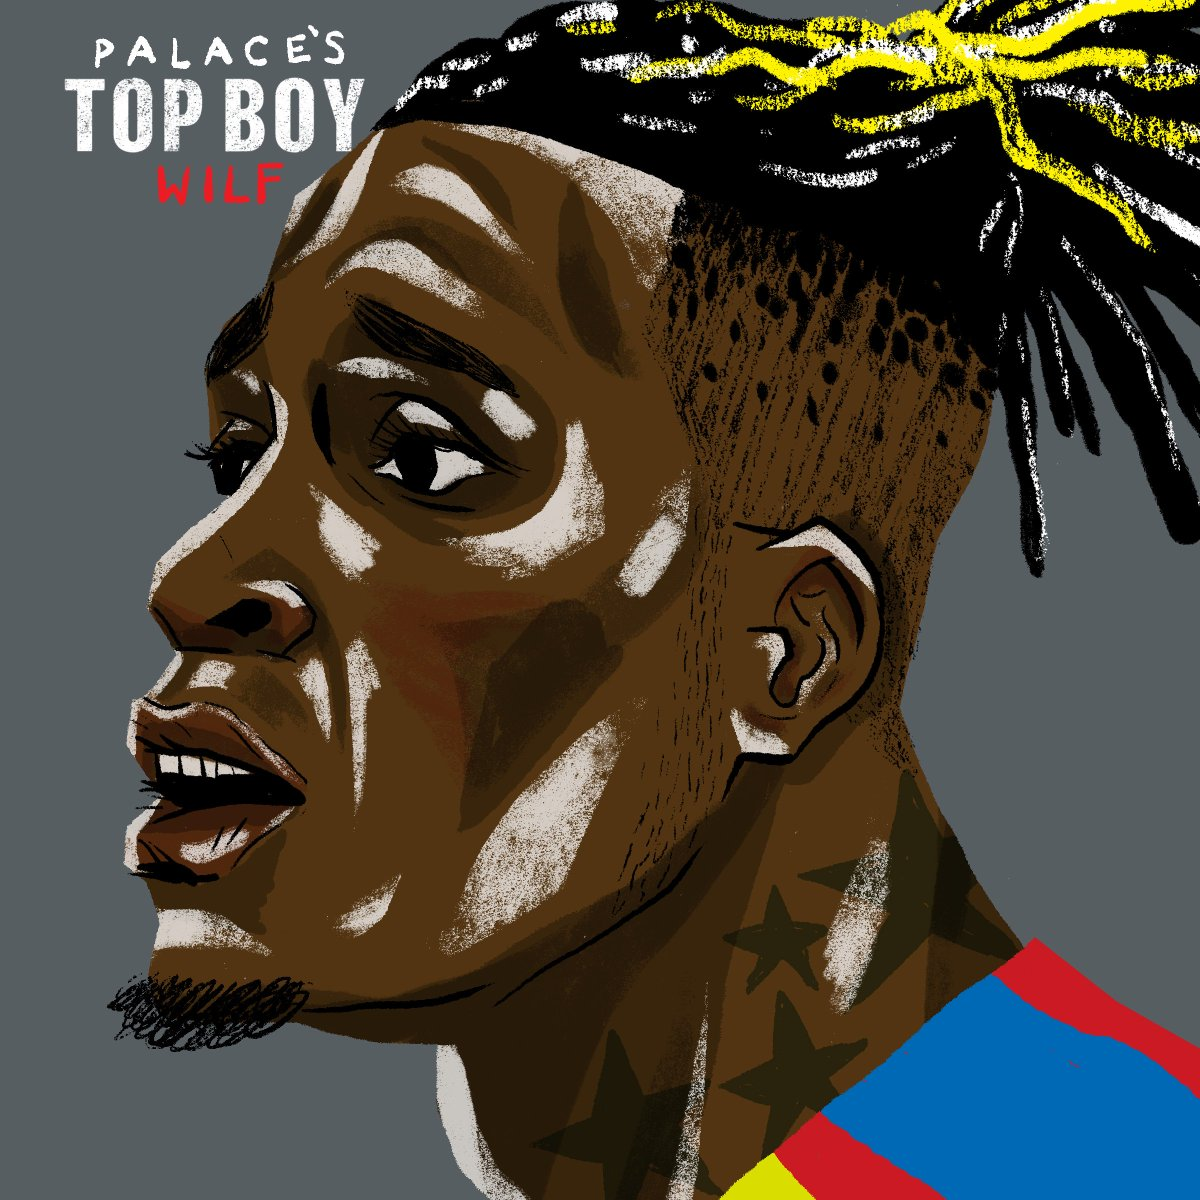 @PremierLeague Top Boy    @WilfriedZaha - @CPFC   53 career goals for @CPFC  @CPFC's top @PremierLeague scorer  Scored twice at #AFCON2019   Highly sought-after talent    The Ivorian prince.  @TopBoyNetflix #ad<br>http://pic.twitter.com/ZHiR1TADYJ